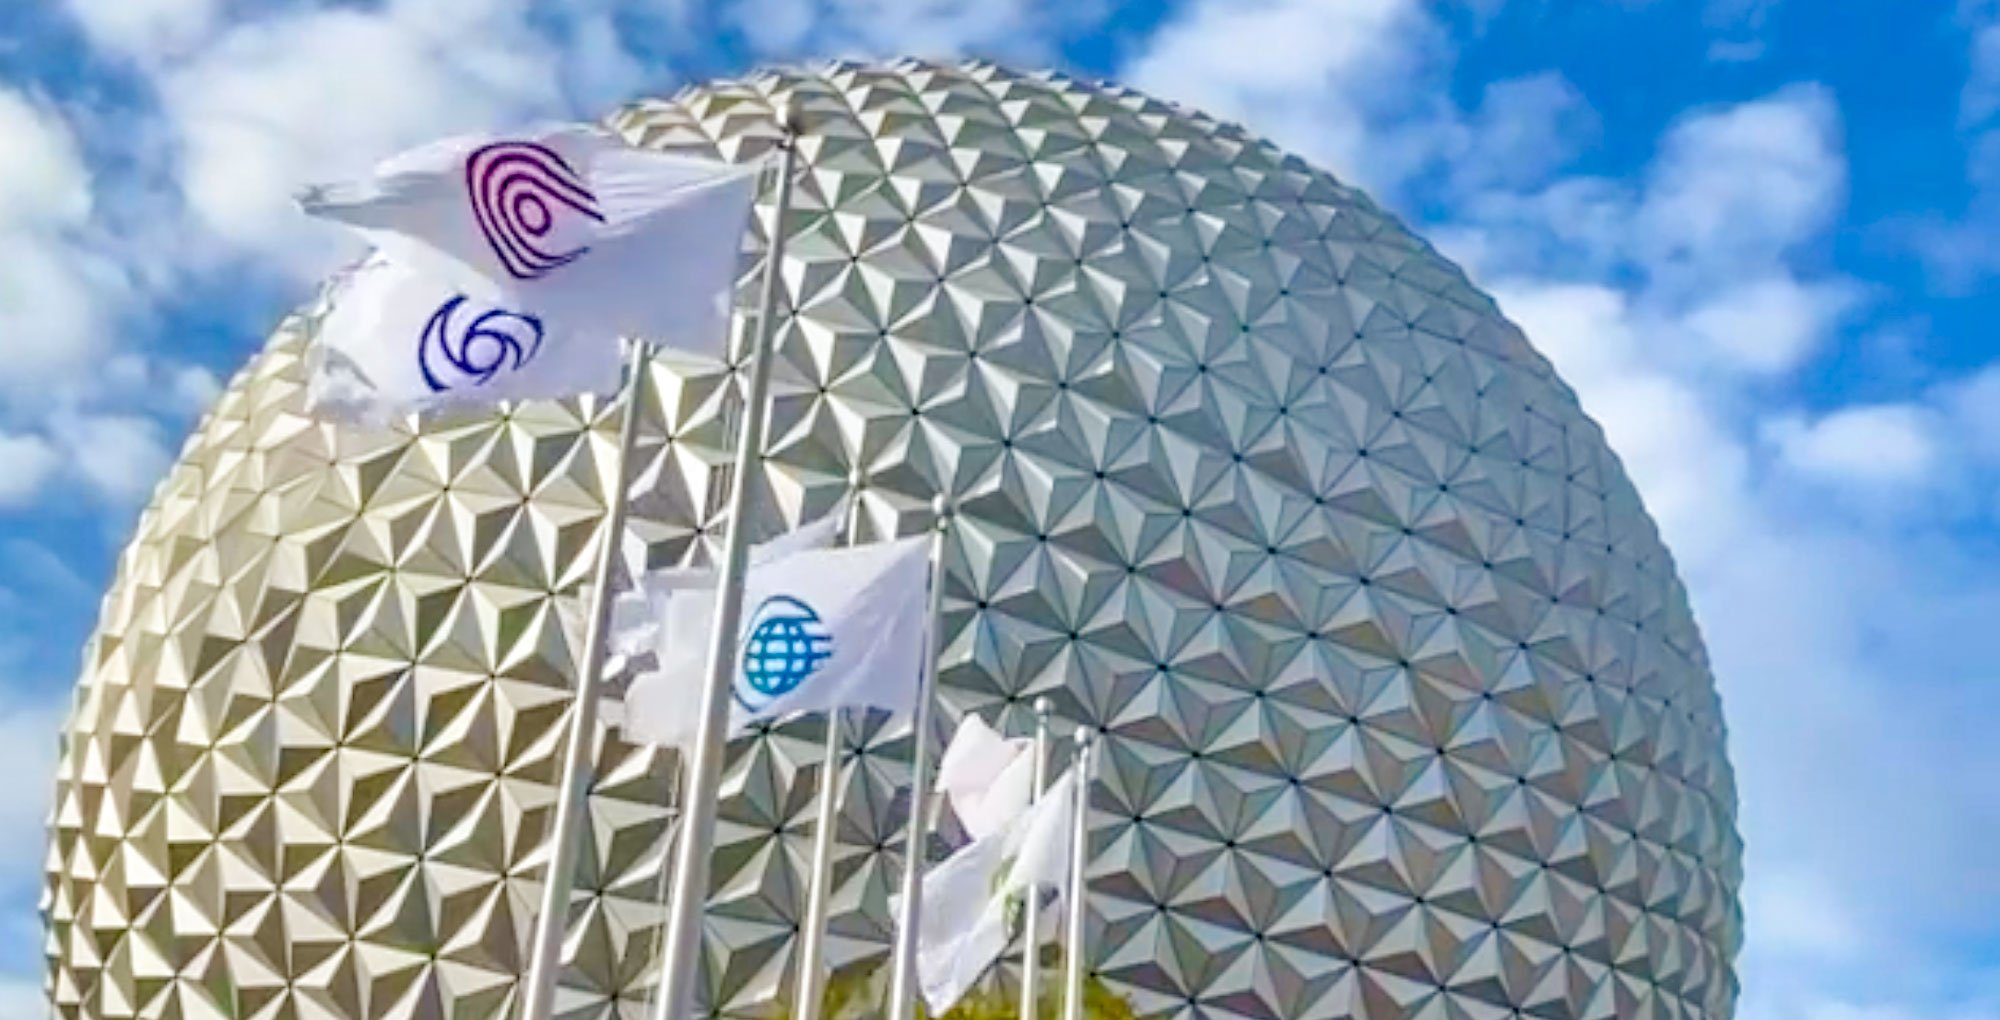 Epcot icon flags in front of Spaceship Earth